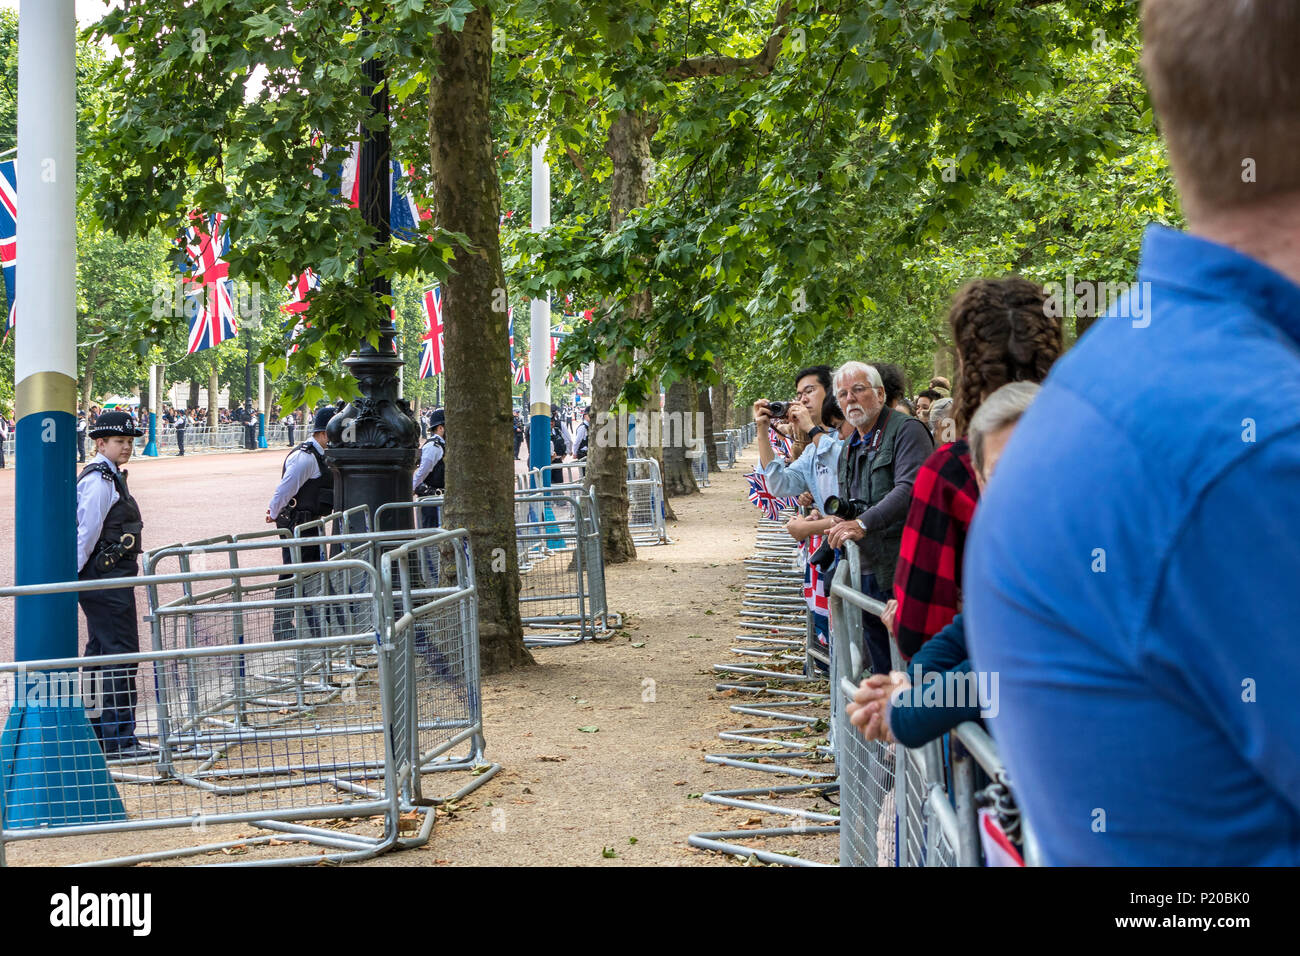 Looking along the line of the waiting crowds lining the Mall at The Trooping Of The Colour Parade 2018 Stock Photo